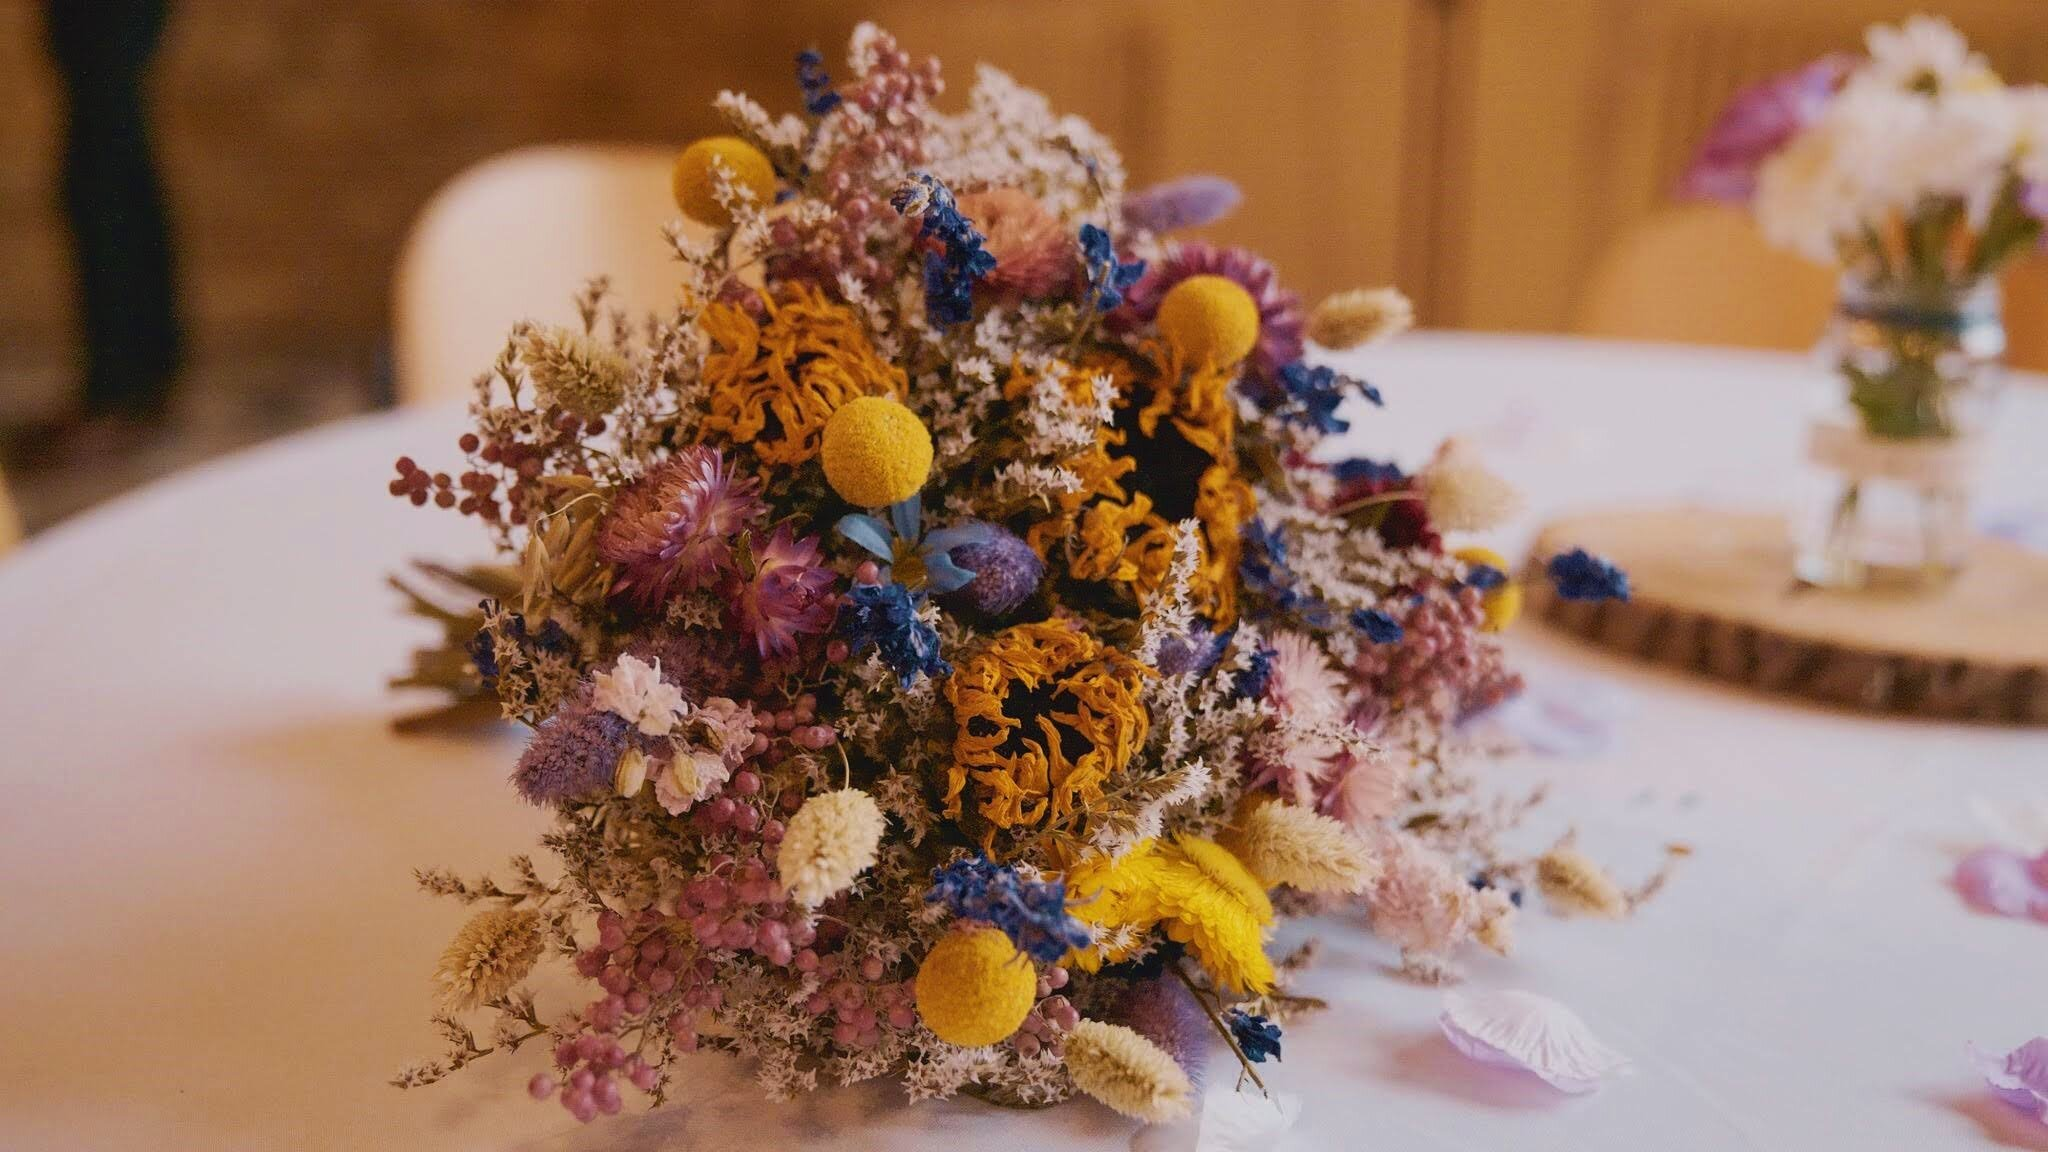 How To Care For Your Dried Flowers The Petal Emporium Naturally Elegant Floral Design